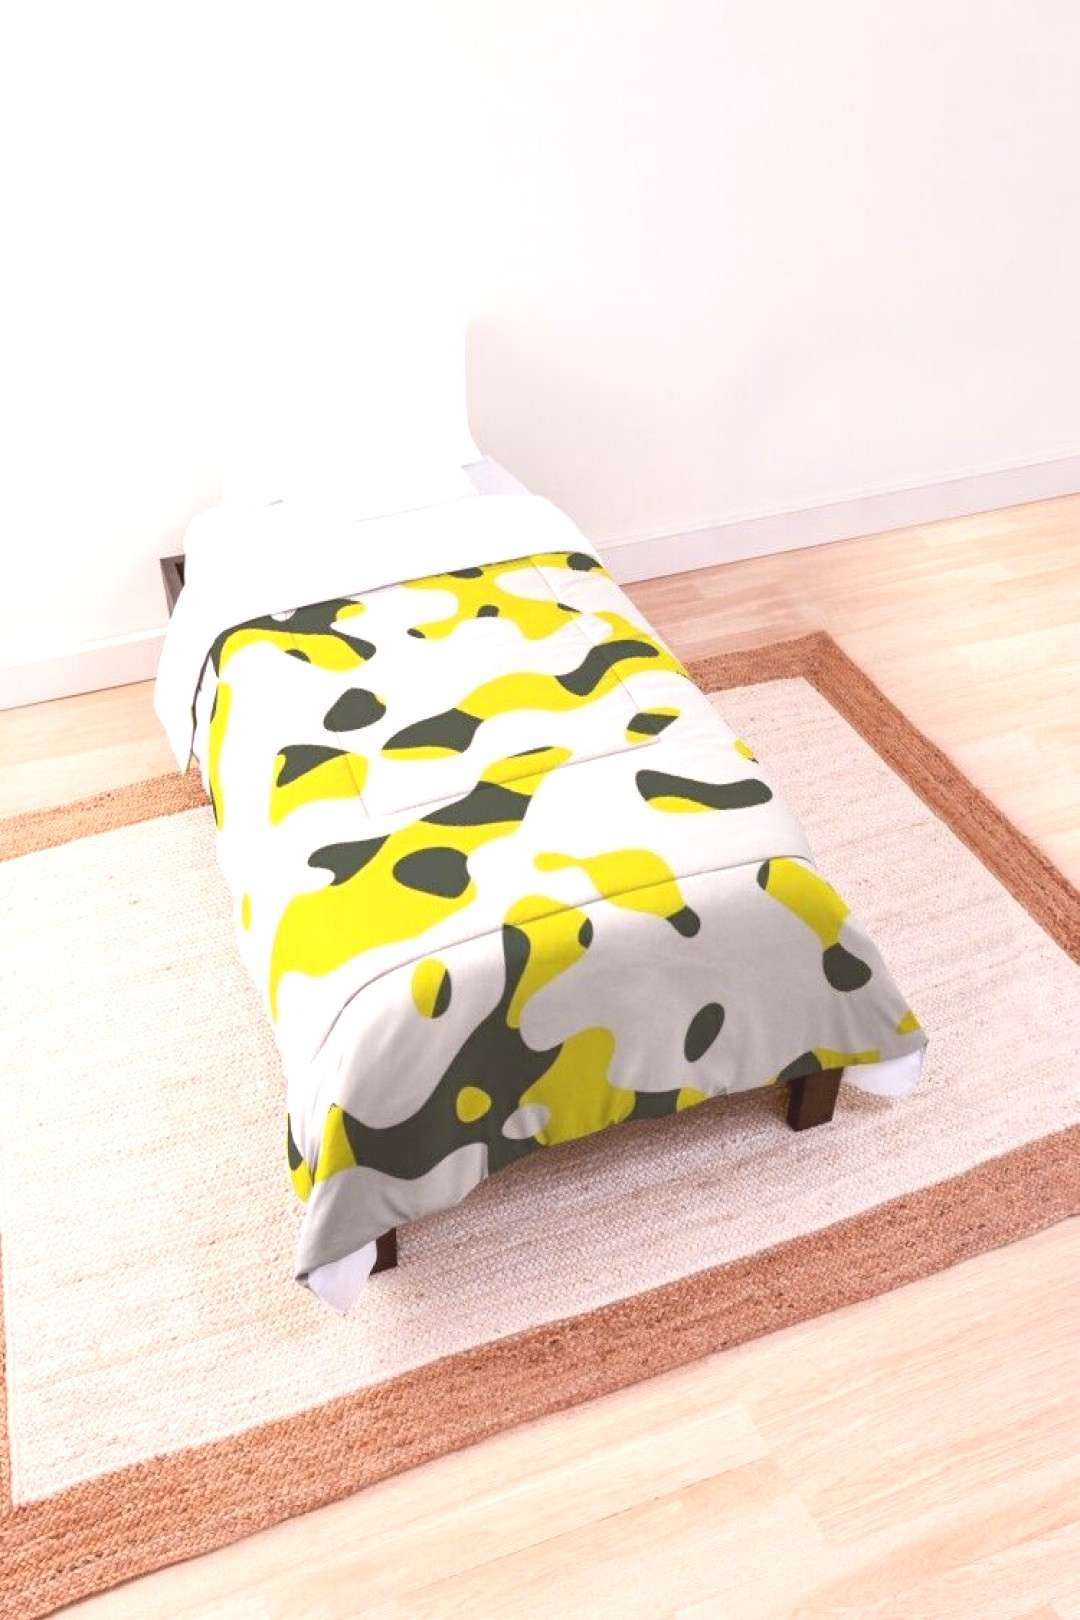 Yellow Camo Comforter by kcstudio Check out this cool yellow and white camo pattern! It is edgy,